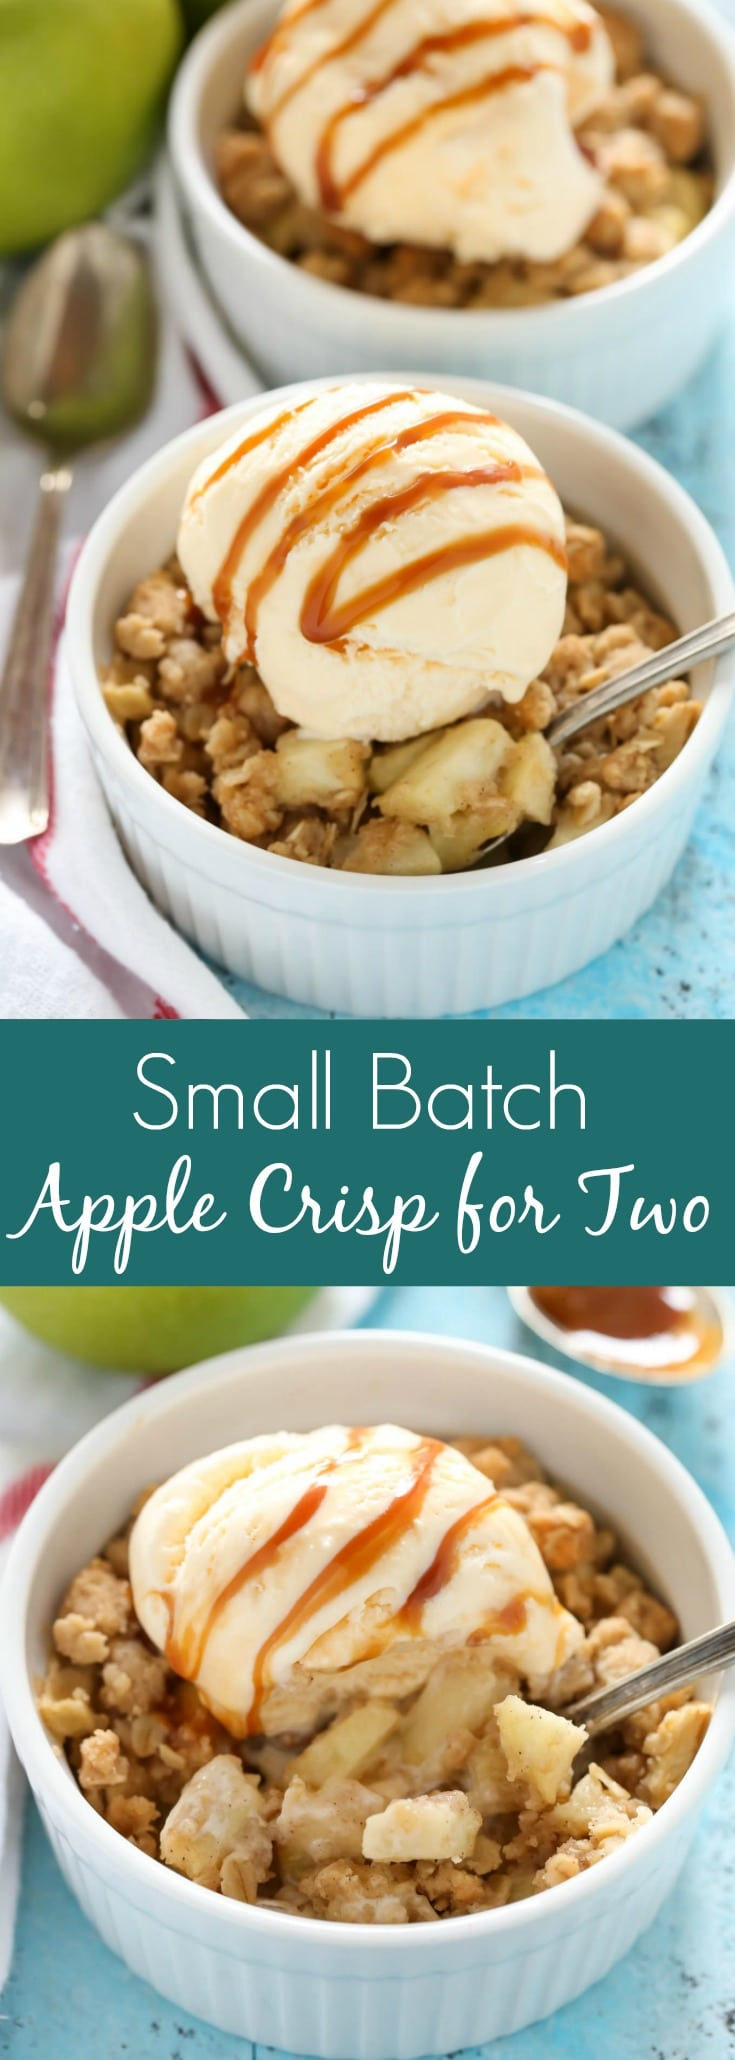 This Apple Crisp for Two is easy to make and a perfect small batch dessert for fall!